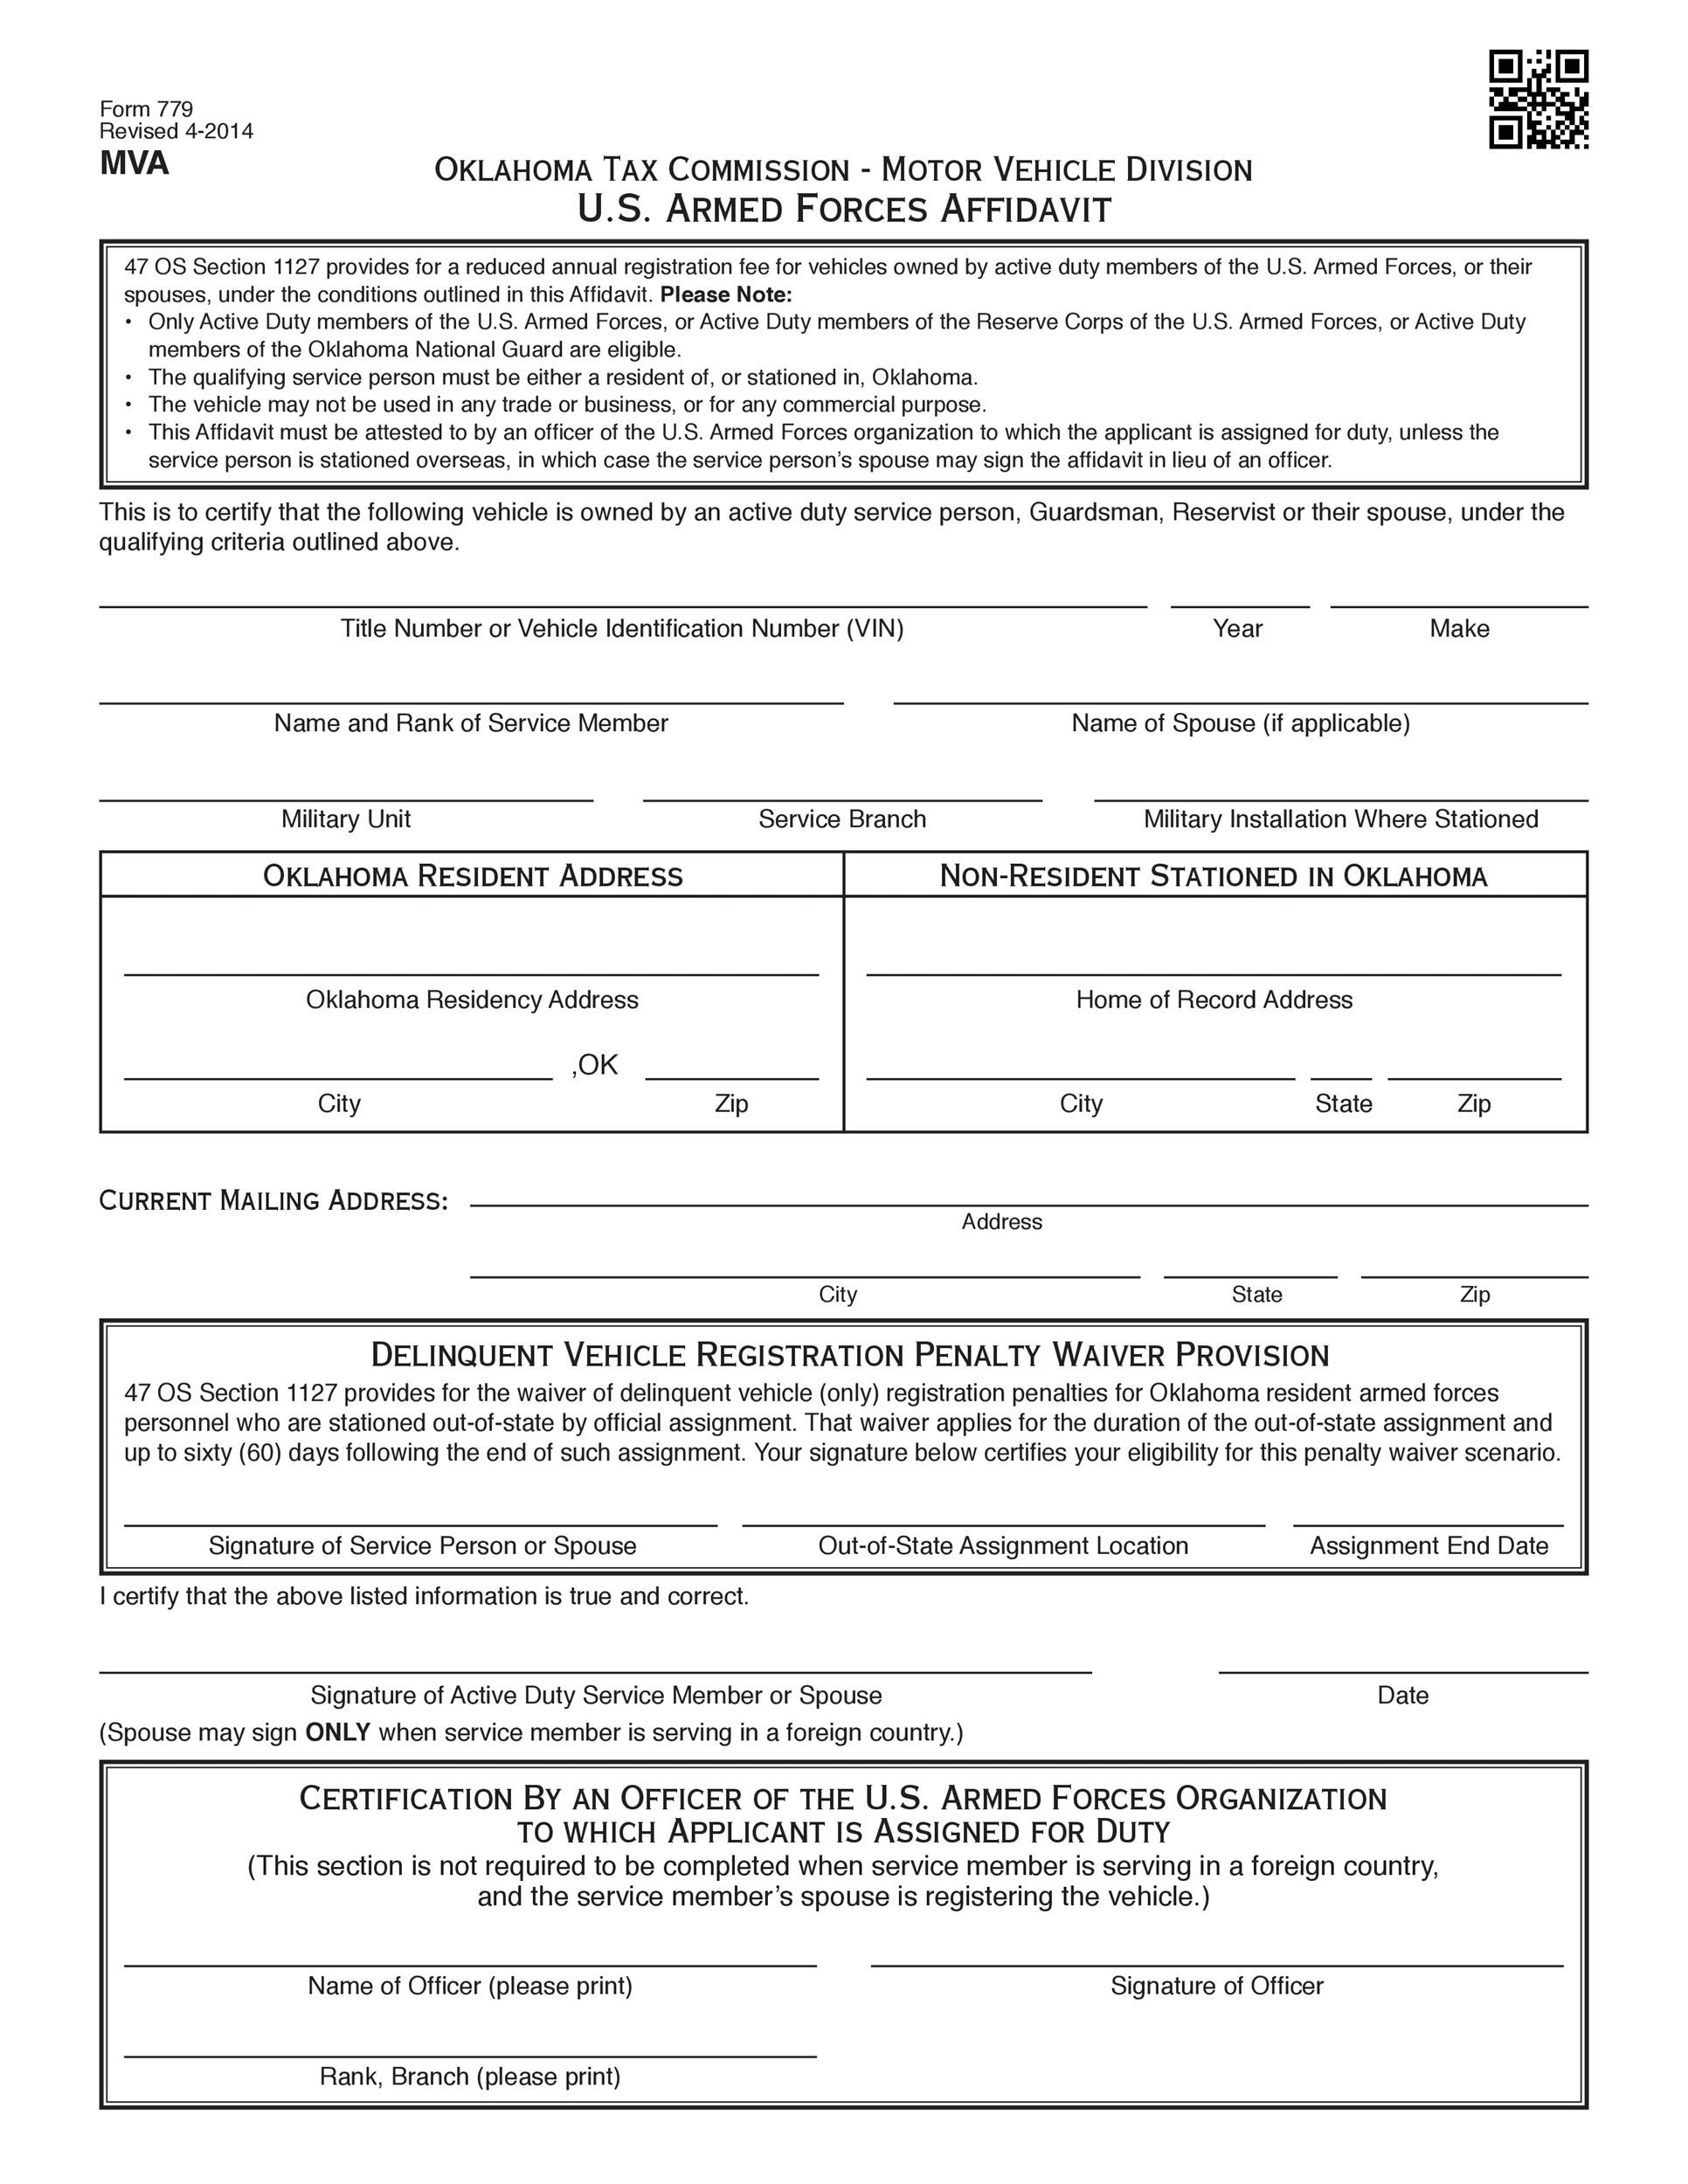 48 sample affidavit forms templates affidavit of support form printable affidavit form 02 thecheapjerseys Choice Image